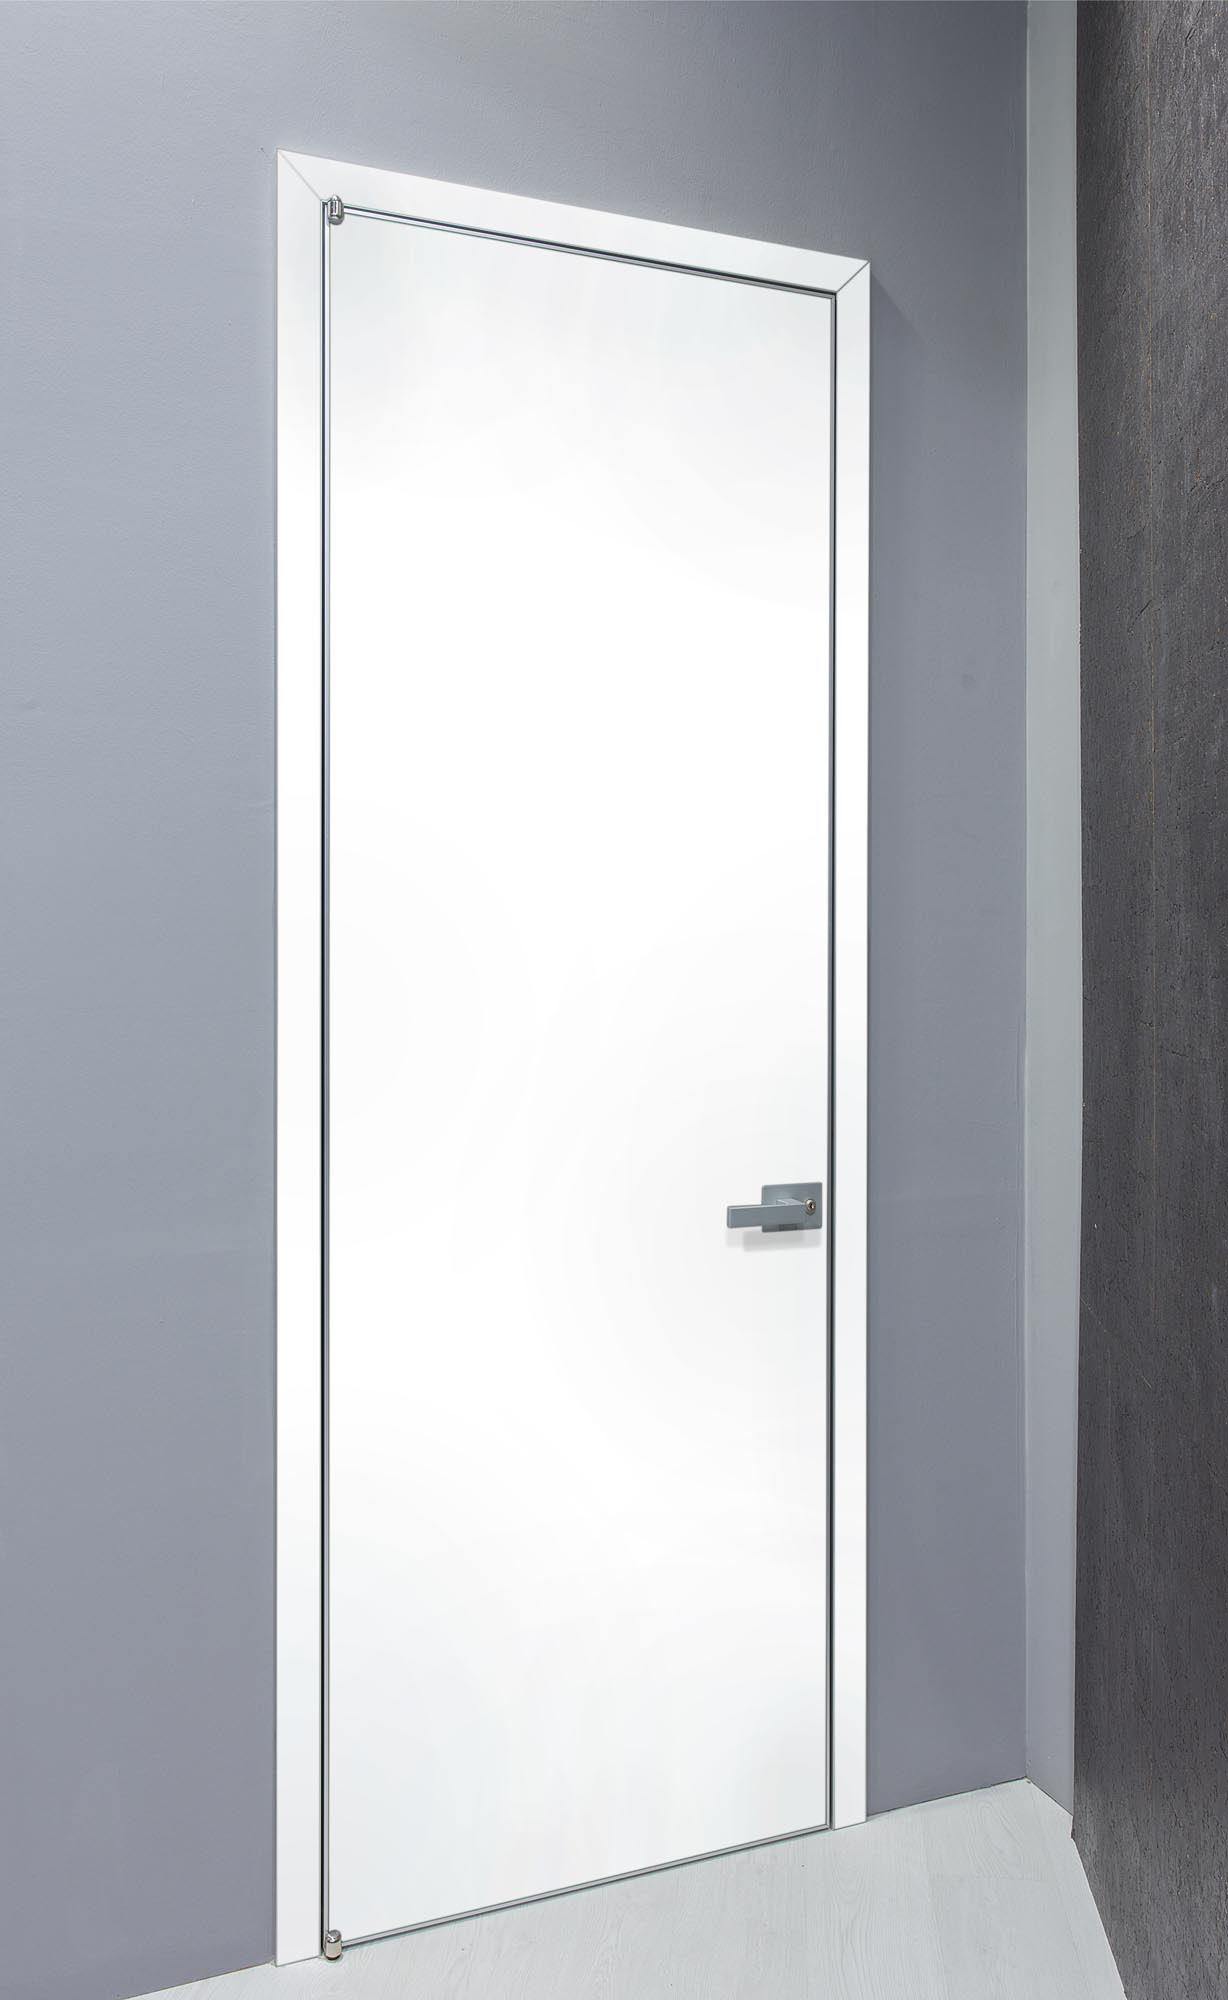 INTERNAL DOOR MINIMAL WITH ALUMINUM FRAME & LACQUER